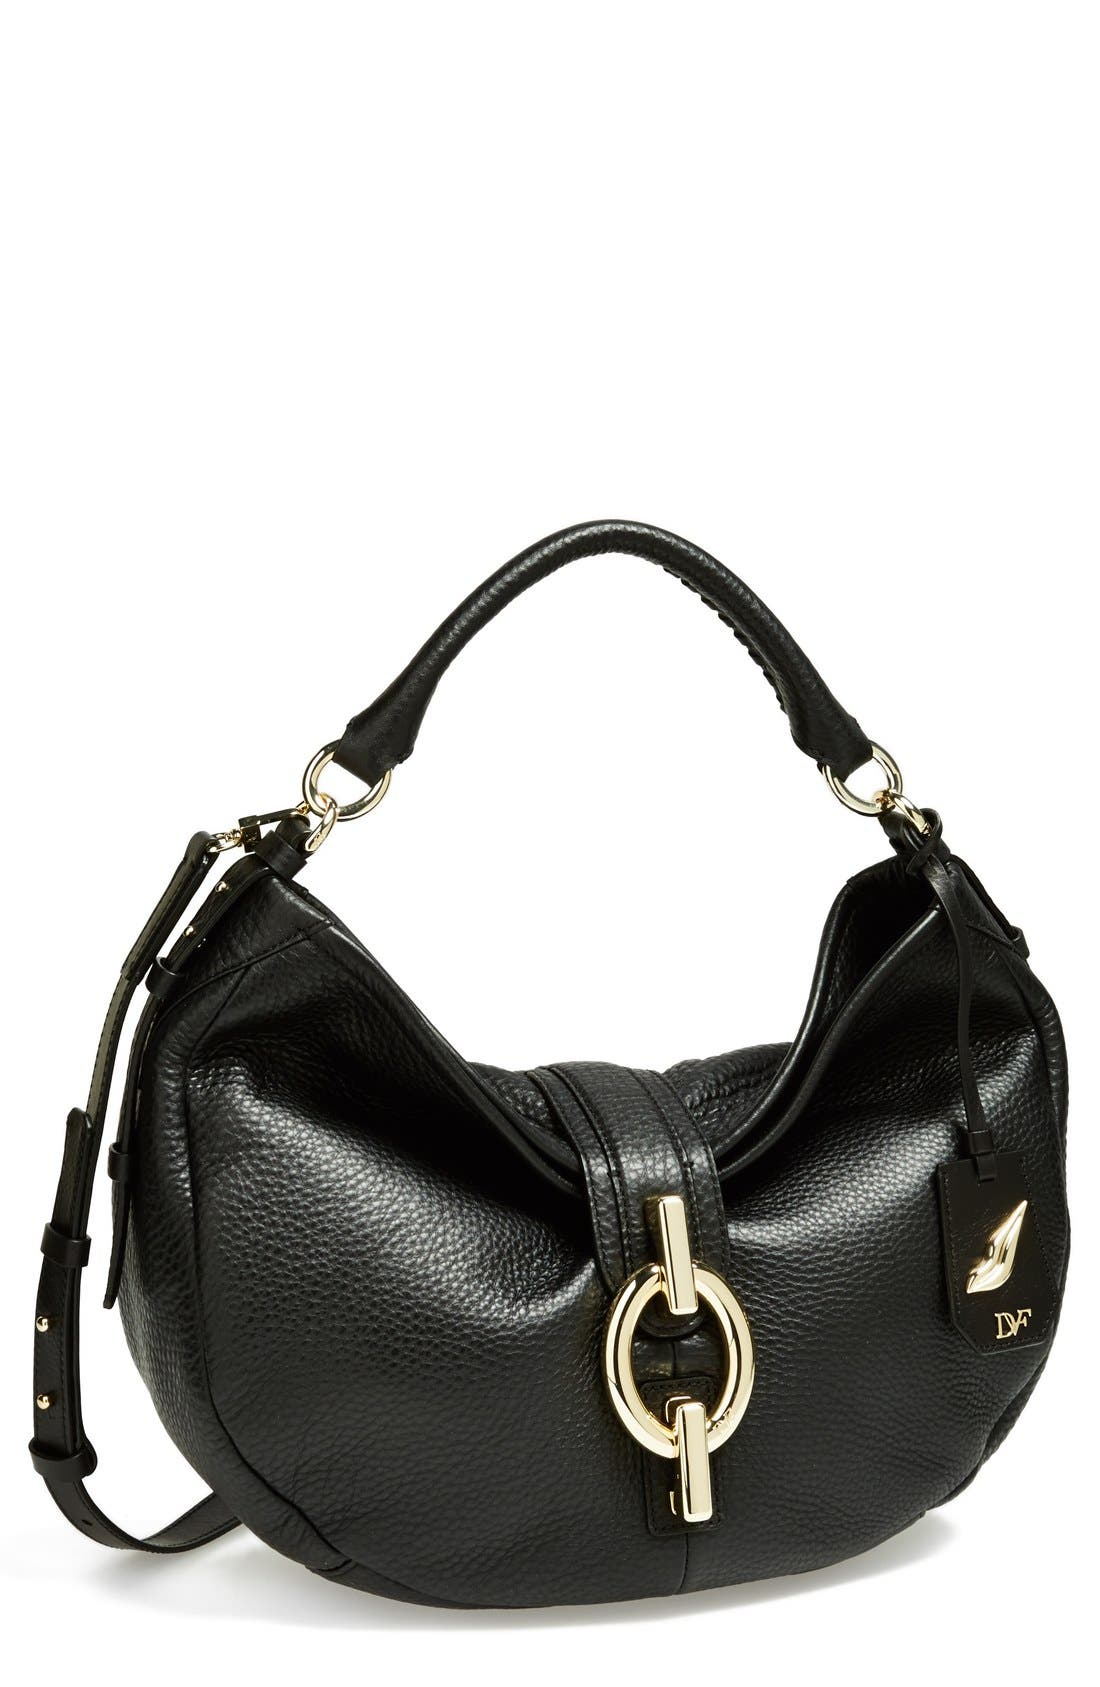 Alternate Image 1 Selected - Diane von Furstenberg 'Sutra' Grainy Leather Hobo